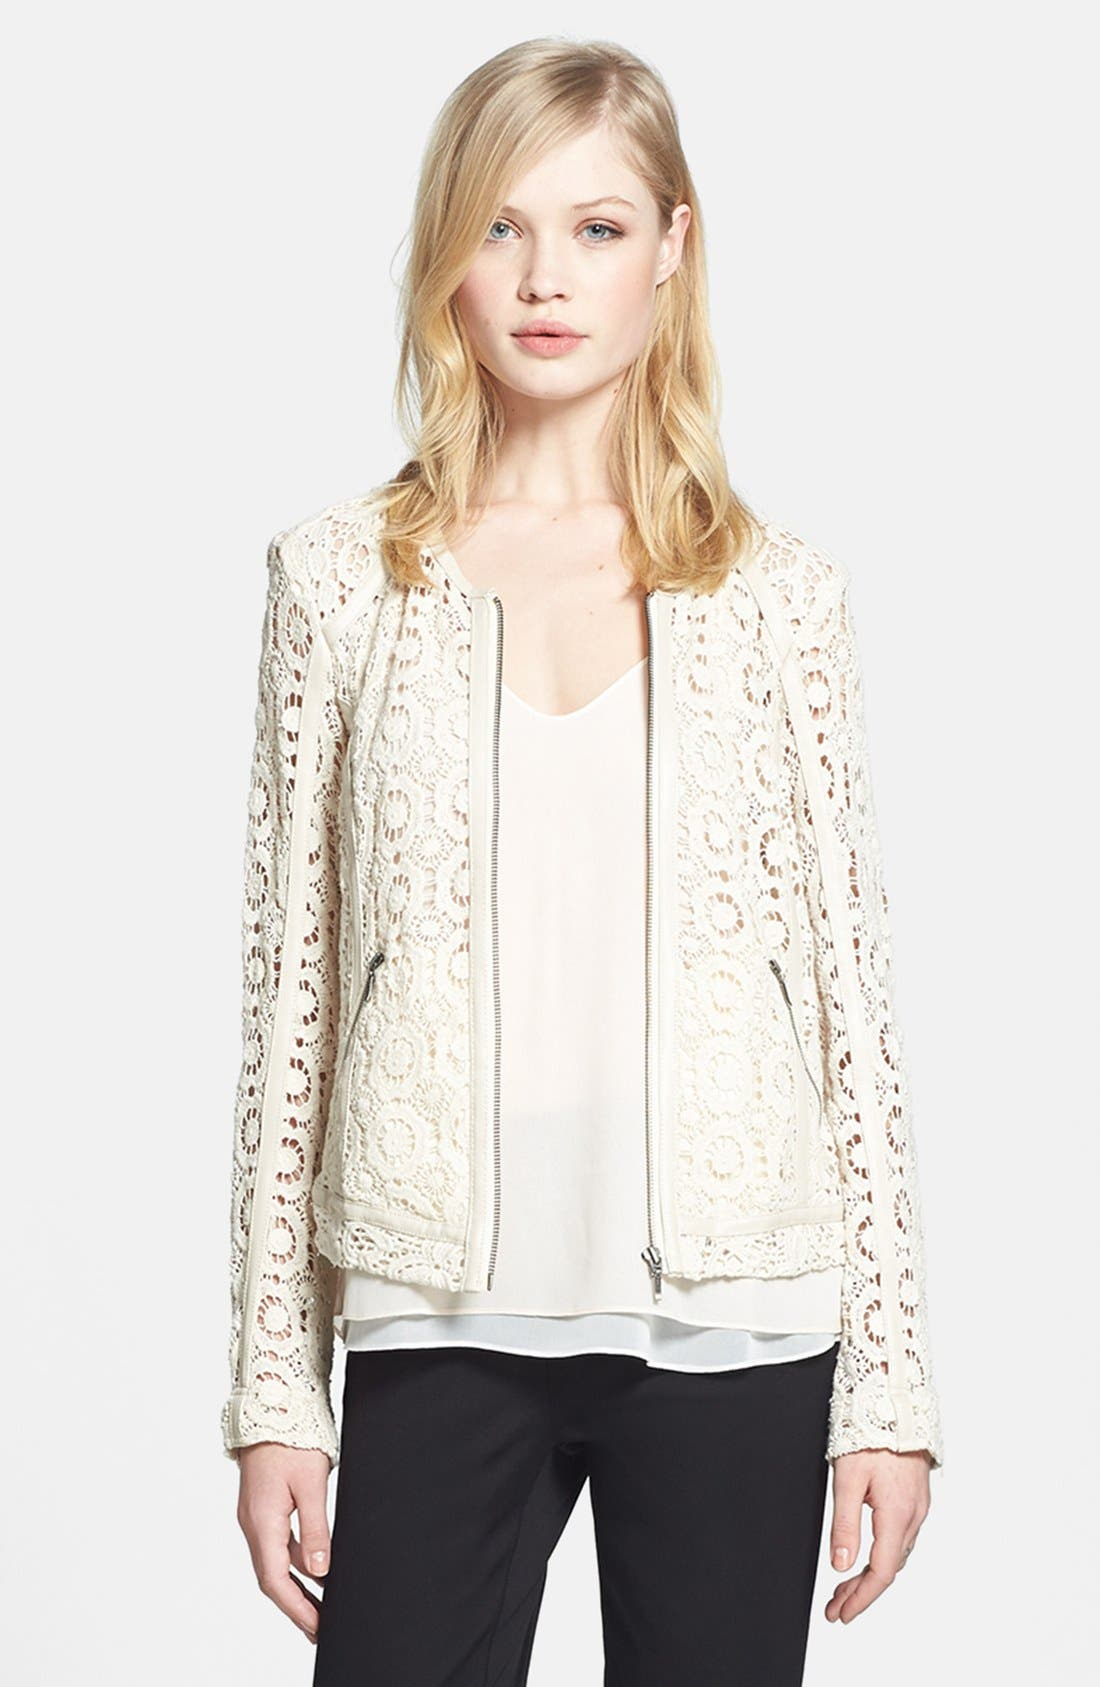 Main Image - Chelsea28 Faux Leather Trim Crocheted Jacket